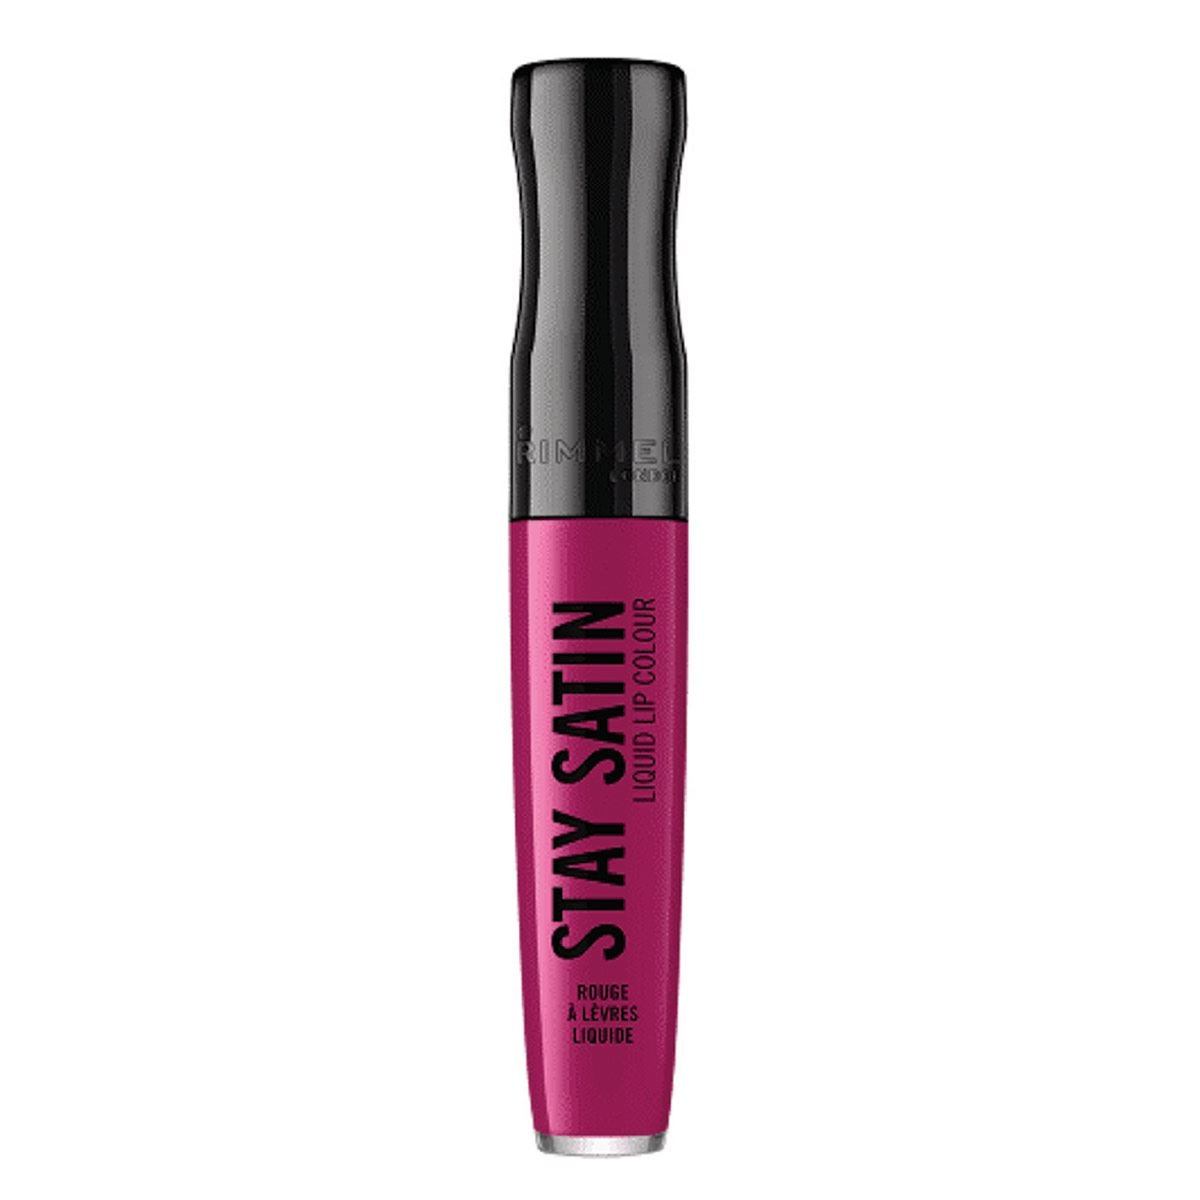 Rimmel London Stay Satin Labial líquido,  5.5ml, Shade: For Sure